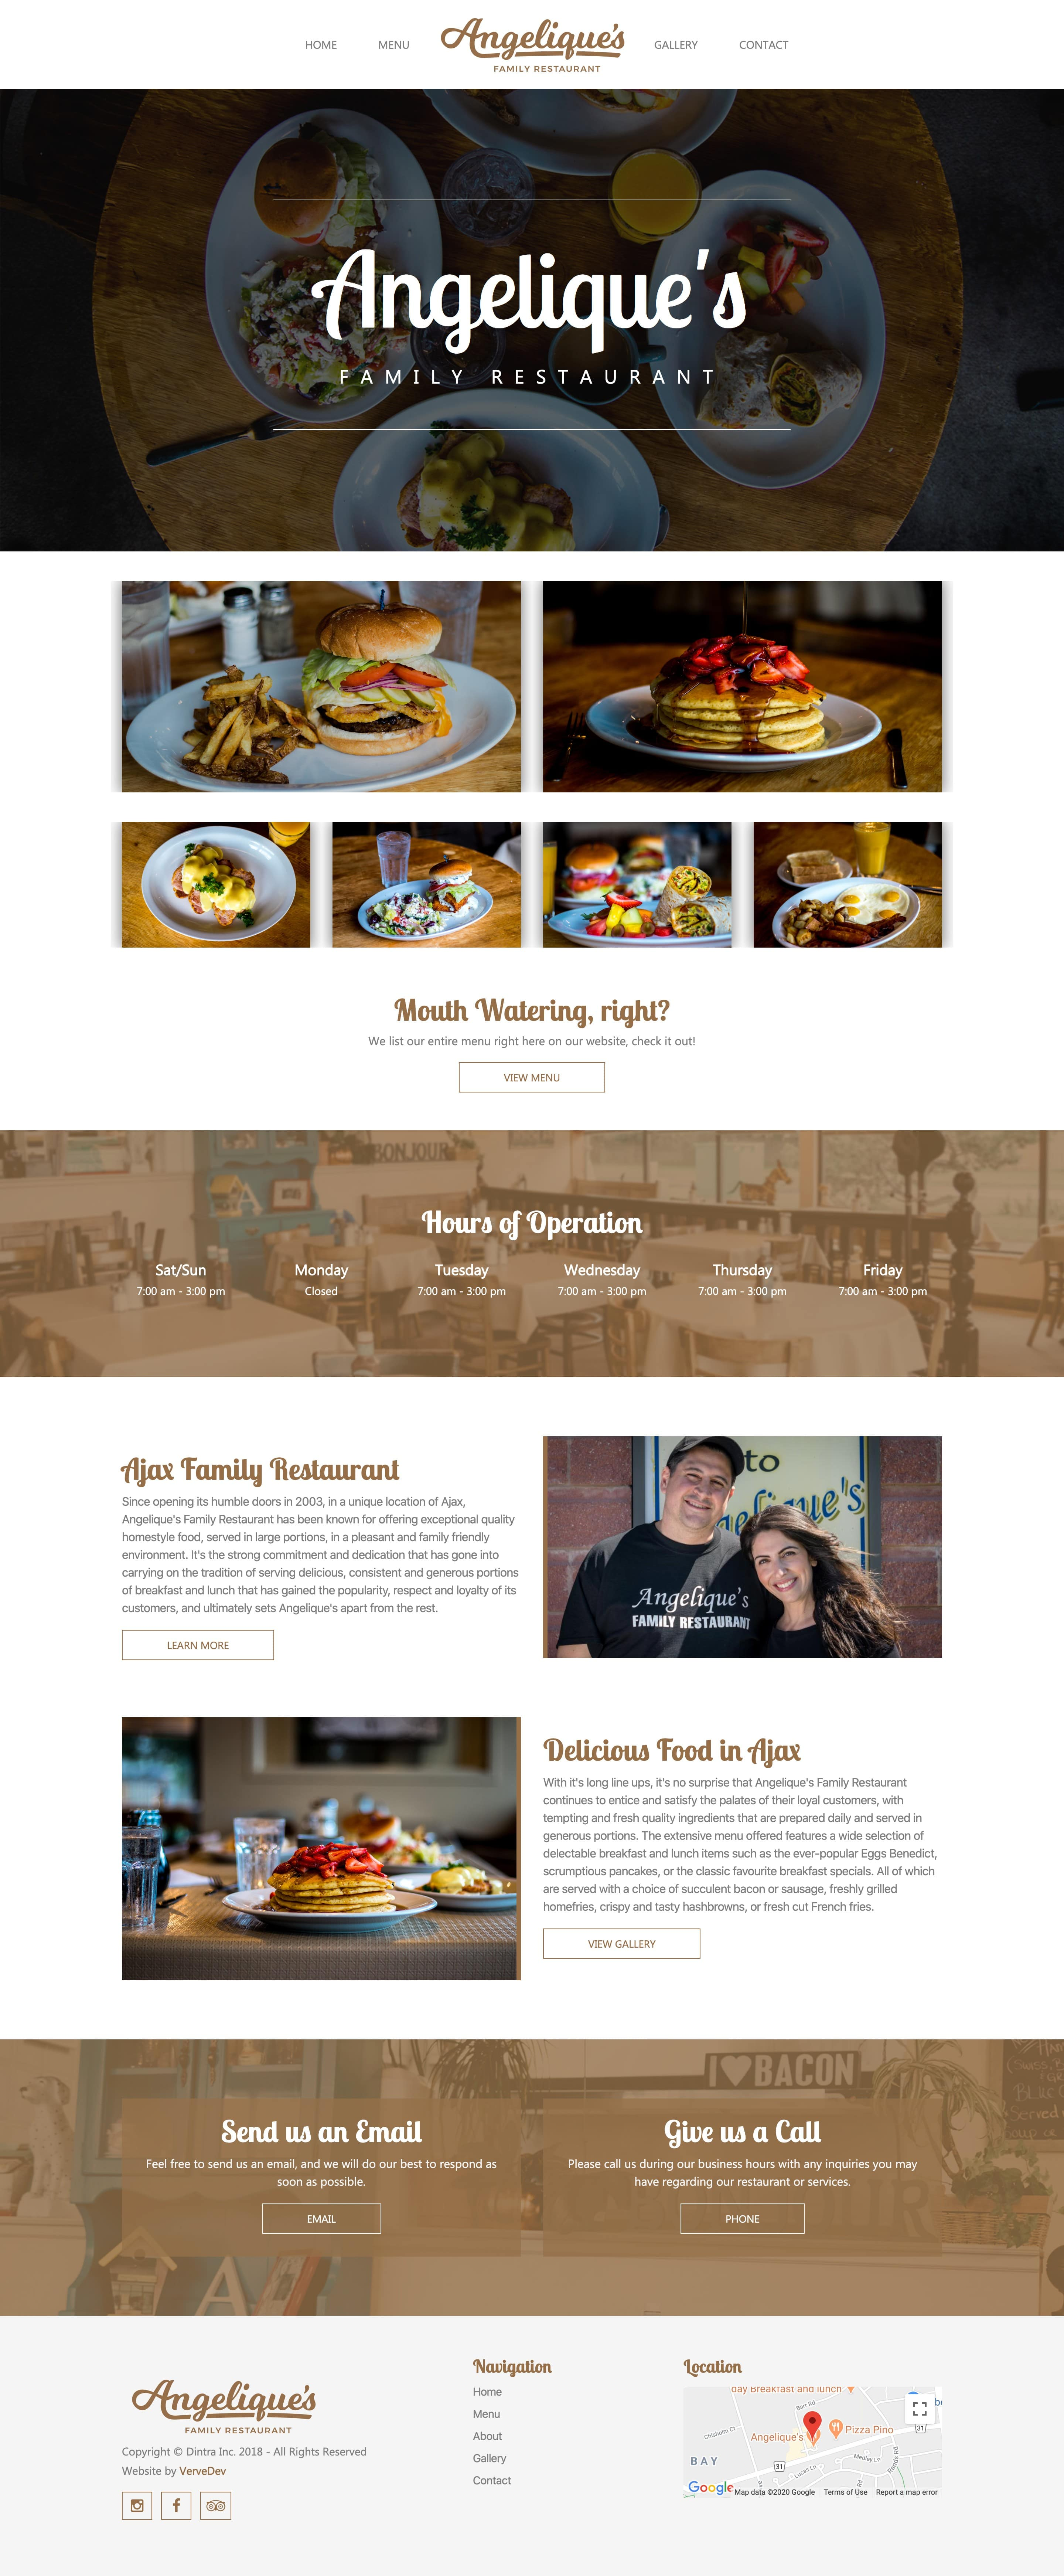 kingston-website-design-portfolio-4